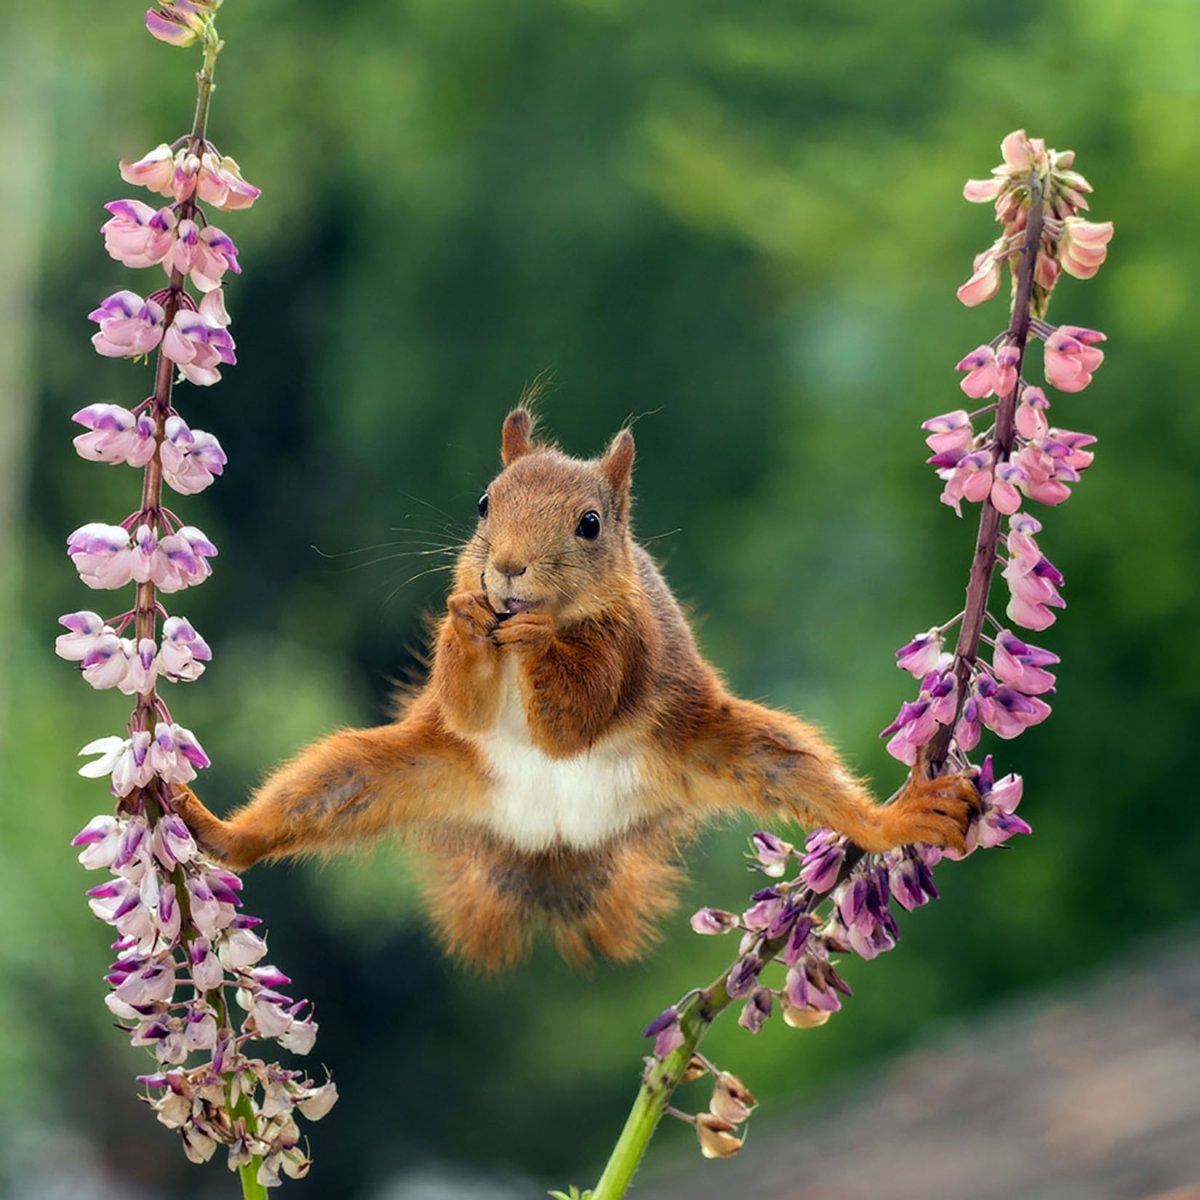 Splits, © Geert Weggen, Highly Commended, Comedy Wildlife Photography Awards